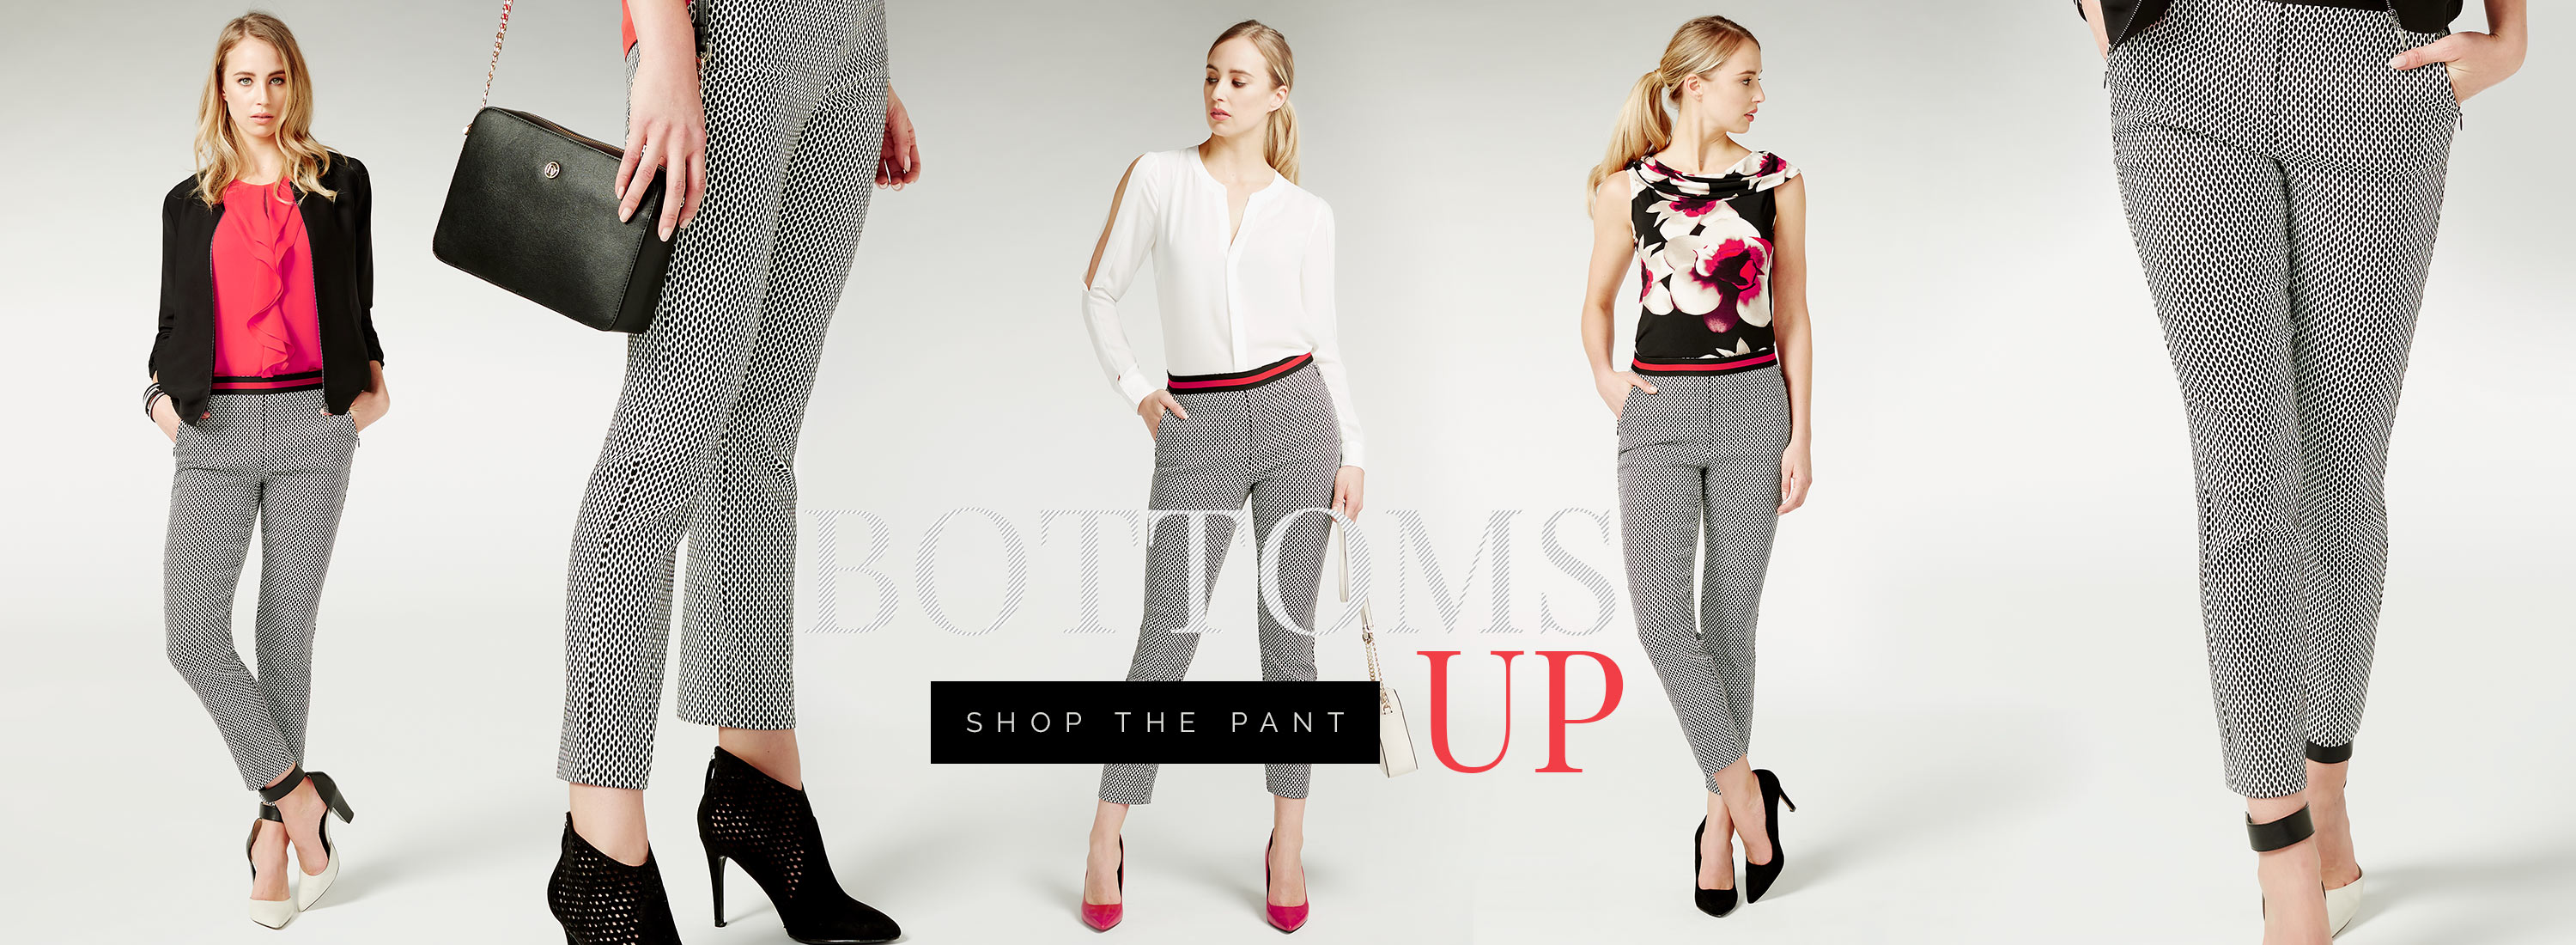 Bottoms Up - SHOP THE PANT